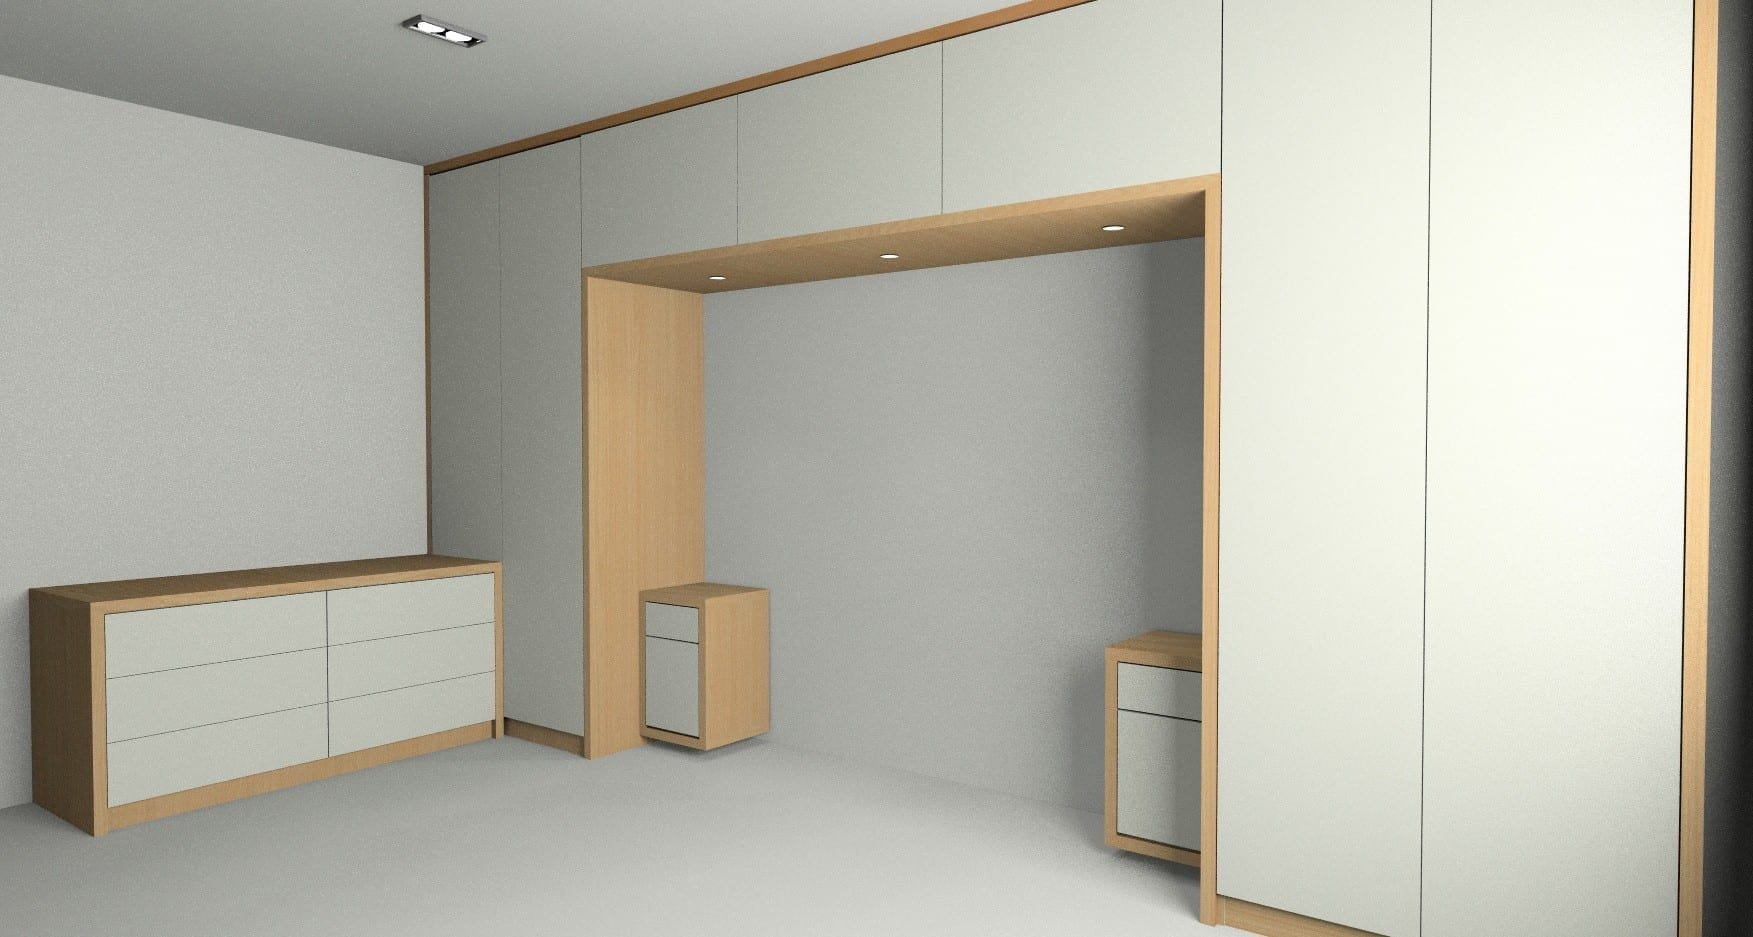 Rendered view of modern bedroom furniture designed for our customer form Silkstone South Yorkshire.